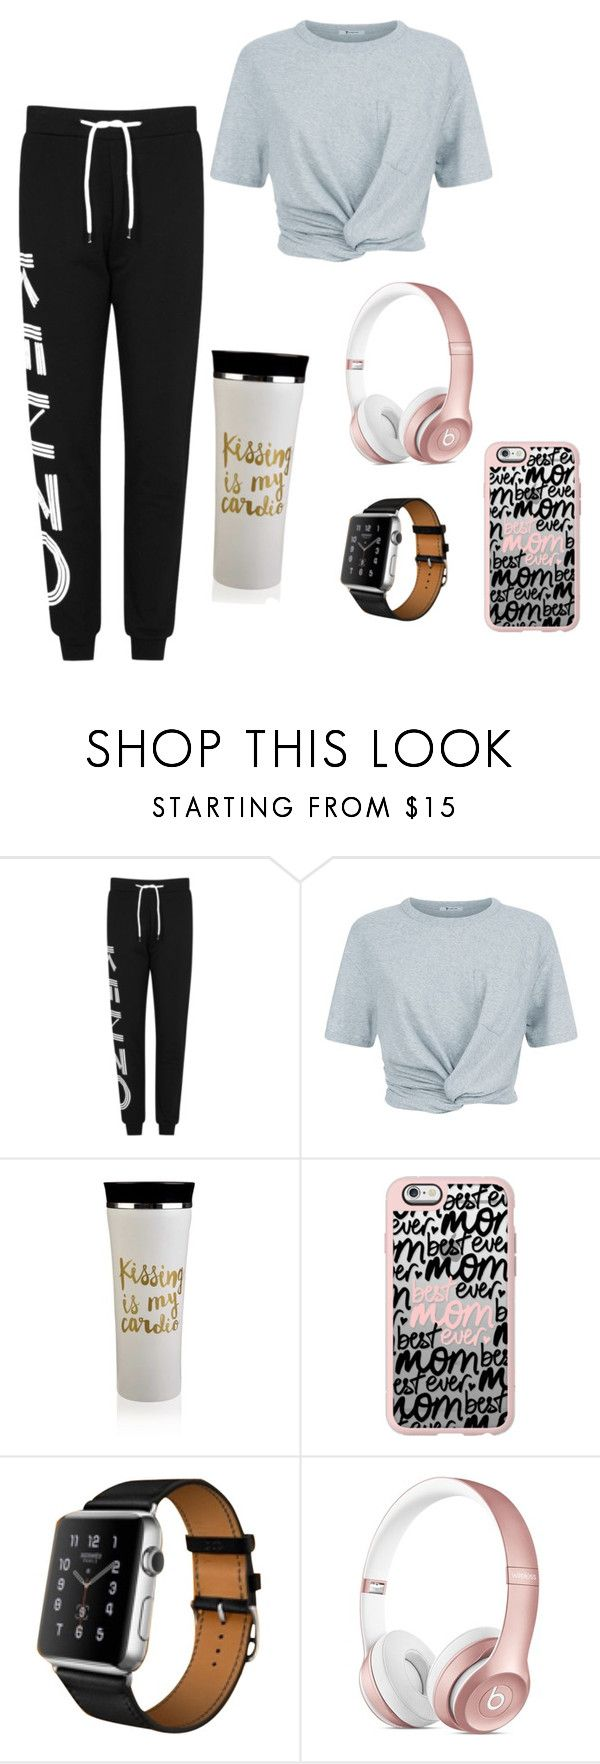 """""""Untitled #14"""" by devy-sapta on Polyvore featuring Kenzo, T By Alexander Wang, Casetify and Hermès"""